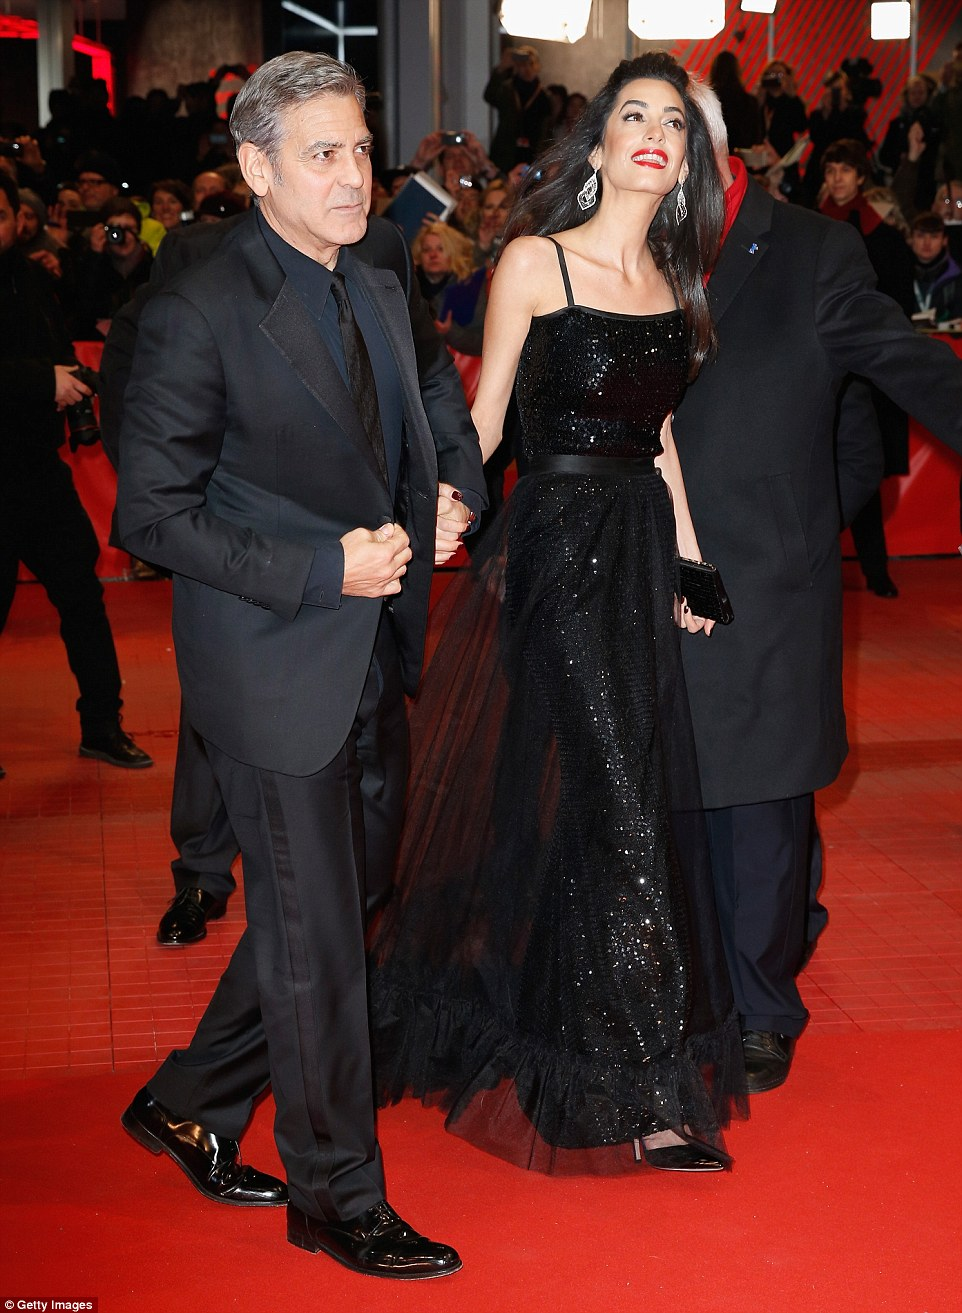 George Clooney and Amal on the red carpet for Hail Caesar Berlin Film Fest premiere 311A06A600000578-3442938-image-m-94_1455218447171